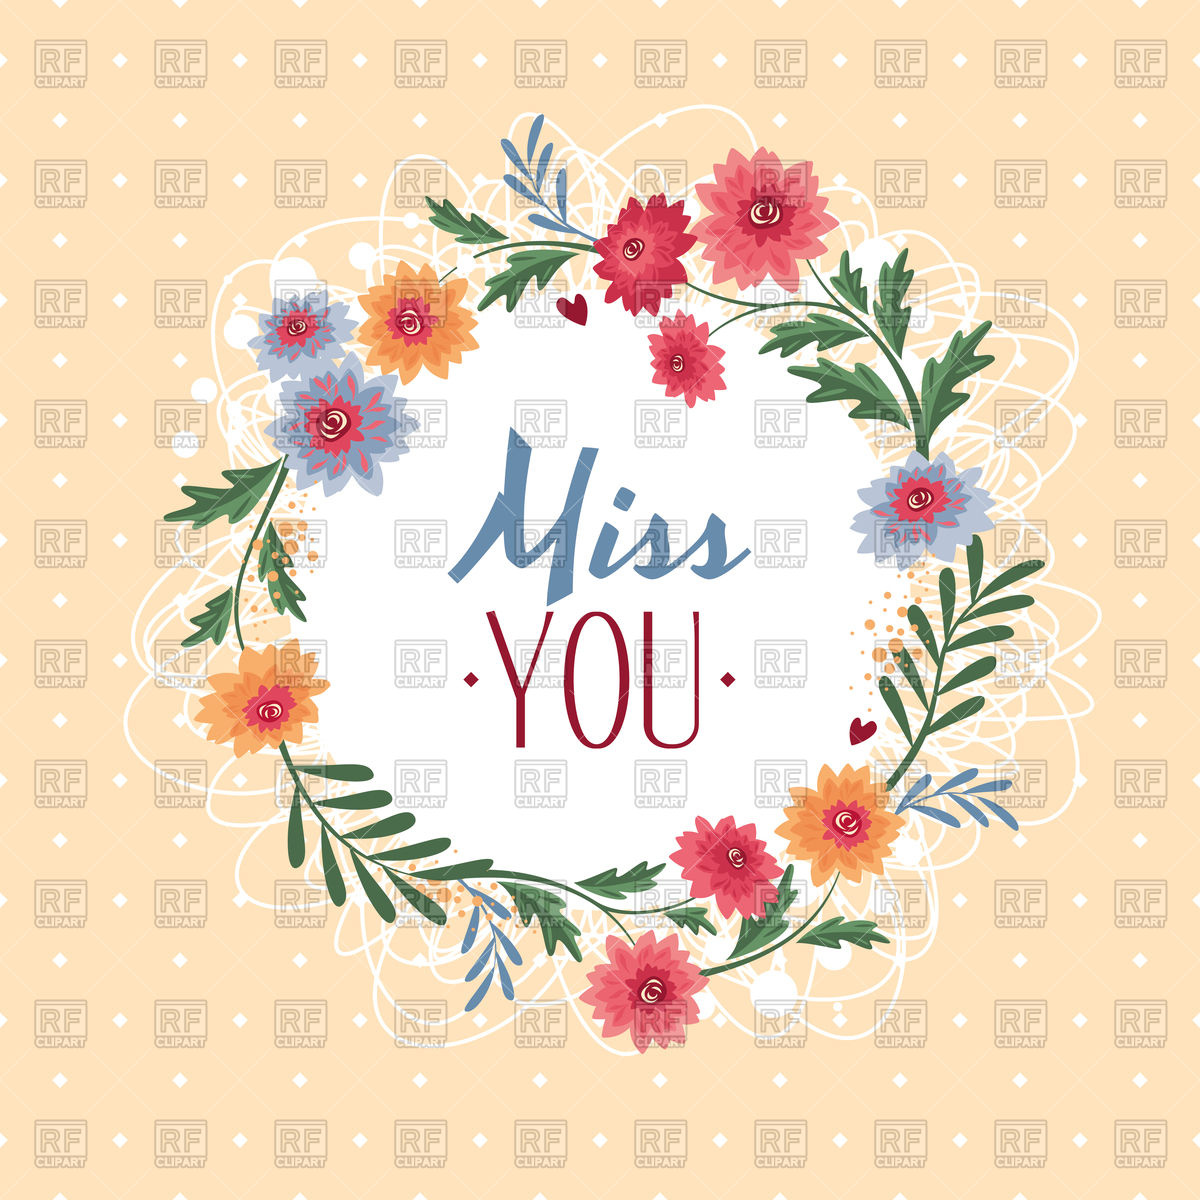 Miss you text in floral frame Stock Vector Image.